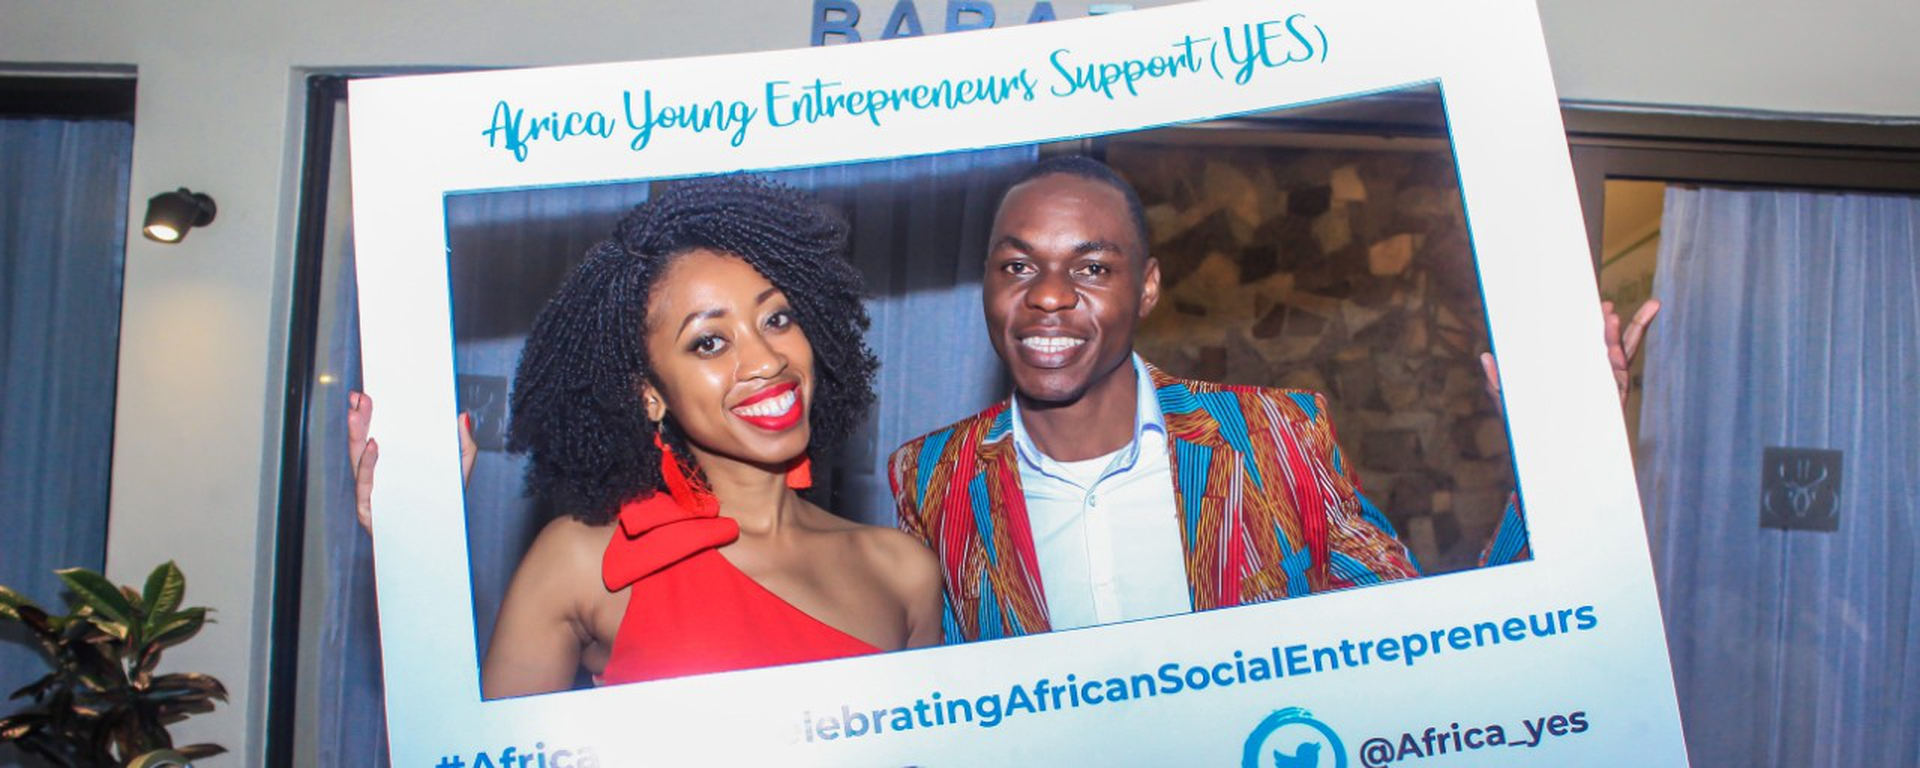 Africa YES Centre - Africa Young Entrepreneur Support (YES) Program Movemeback African initiative cover image